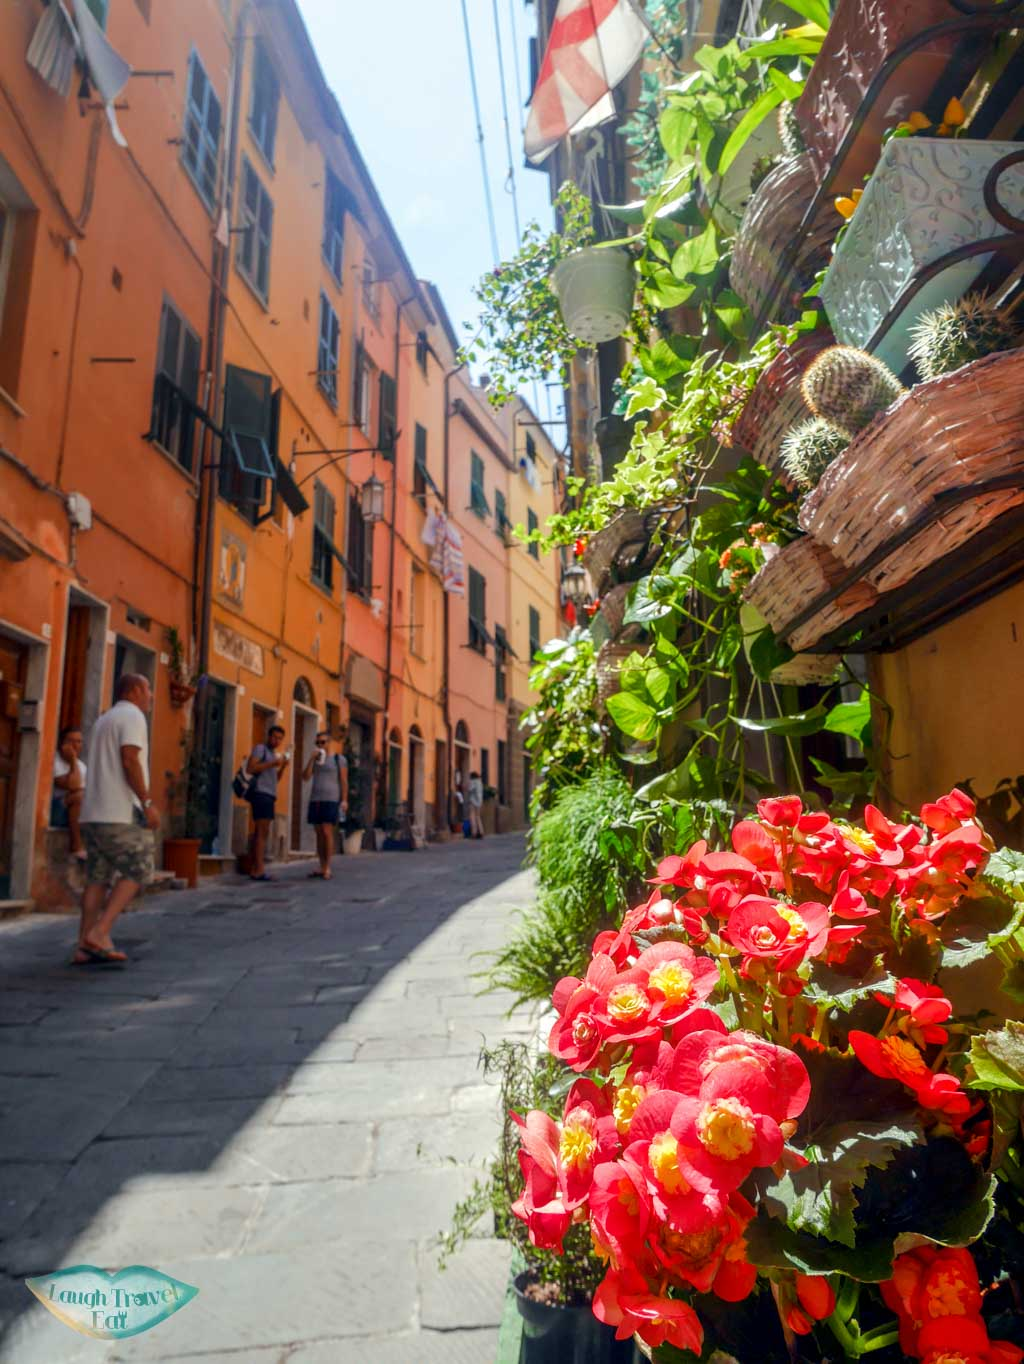 portovenere old town colourful with flower liguria italy | Laugh Travel Eat